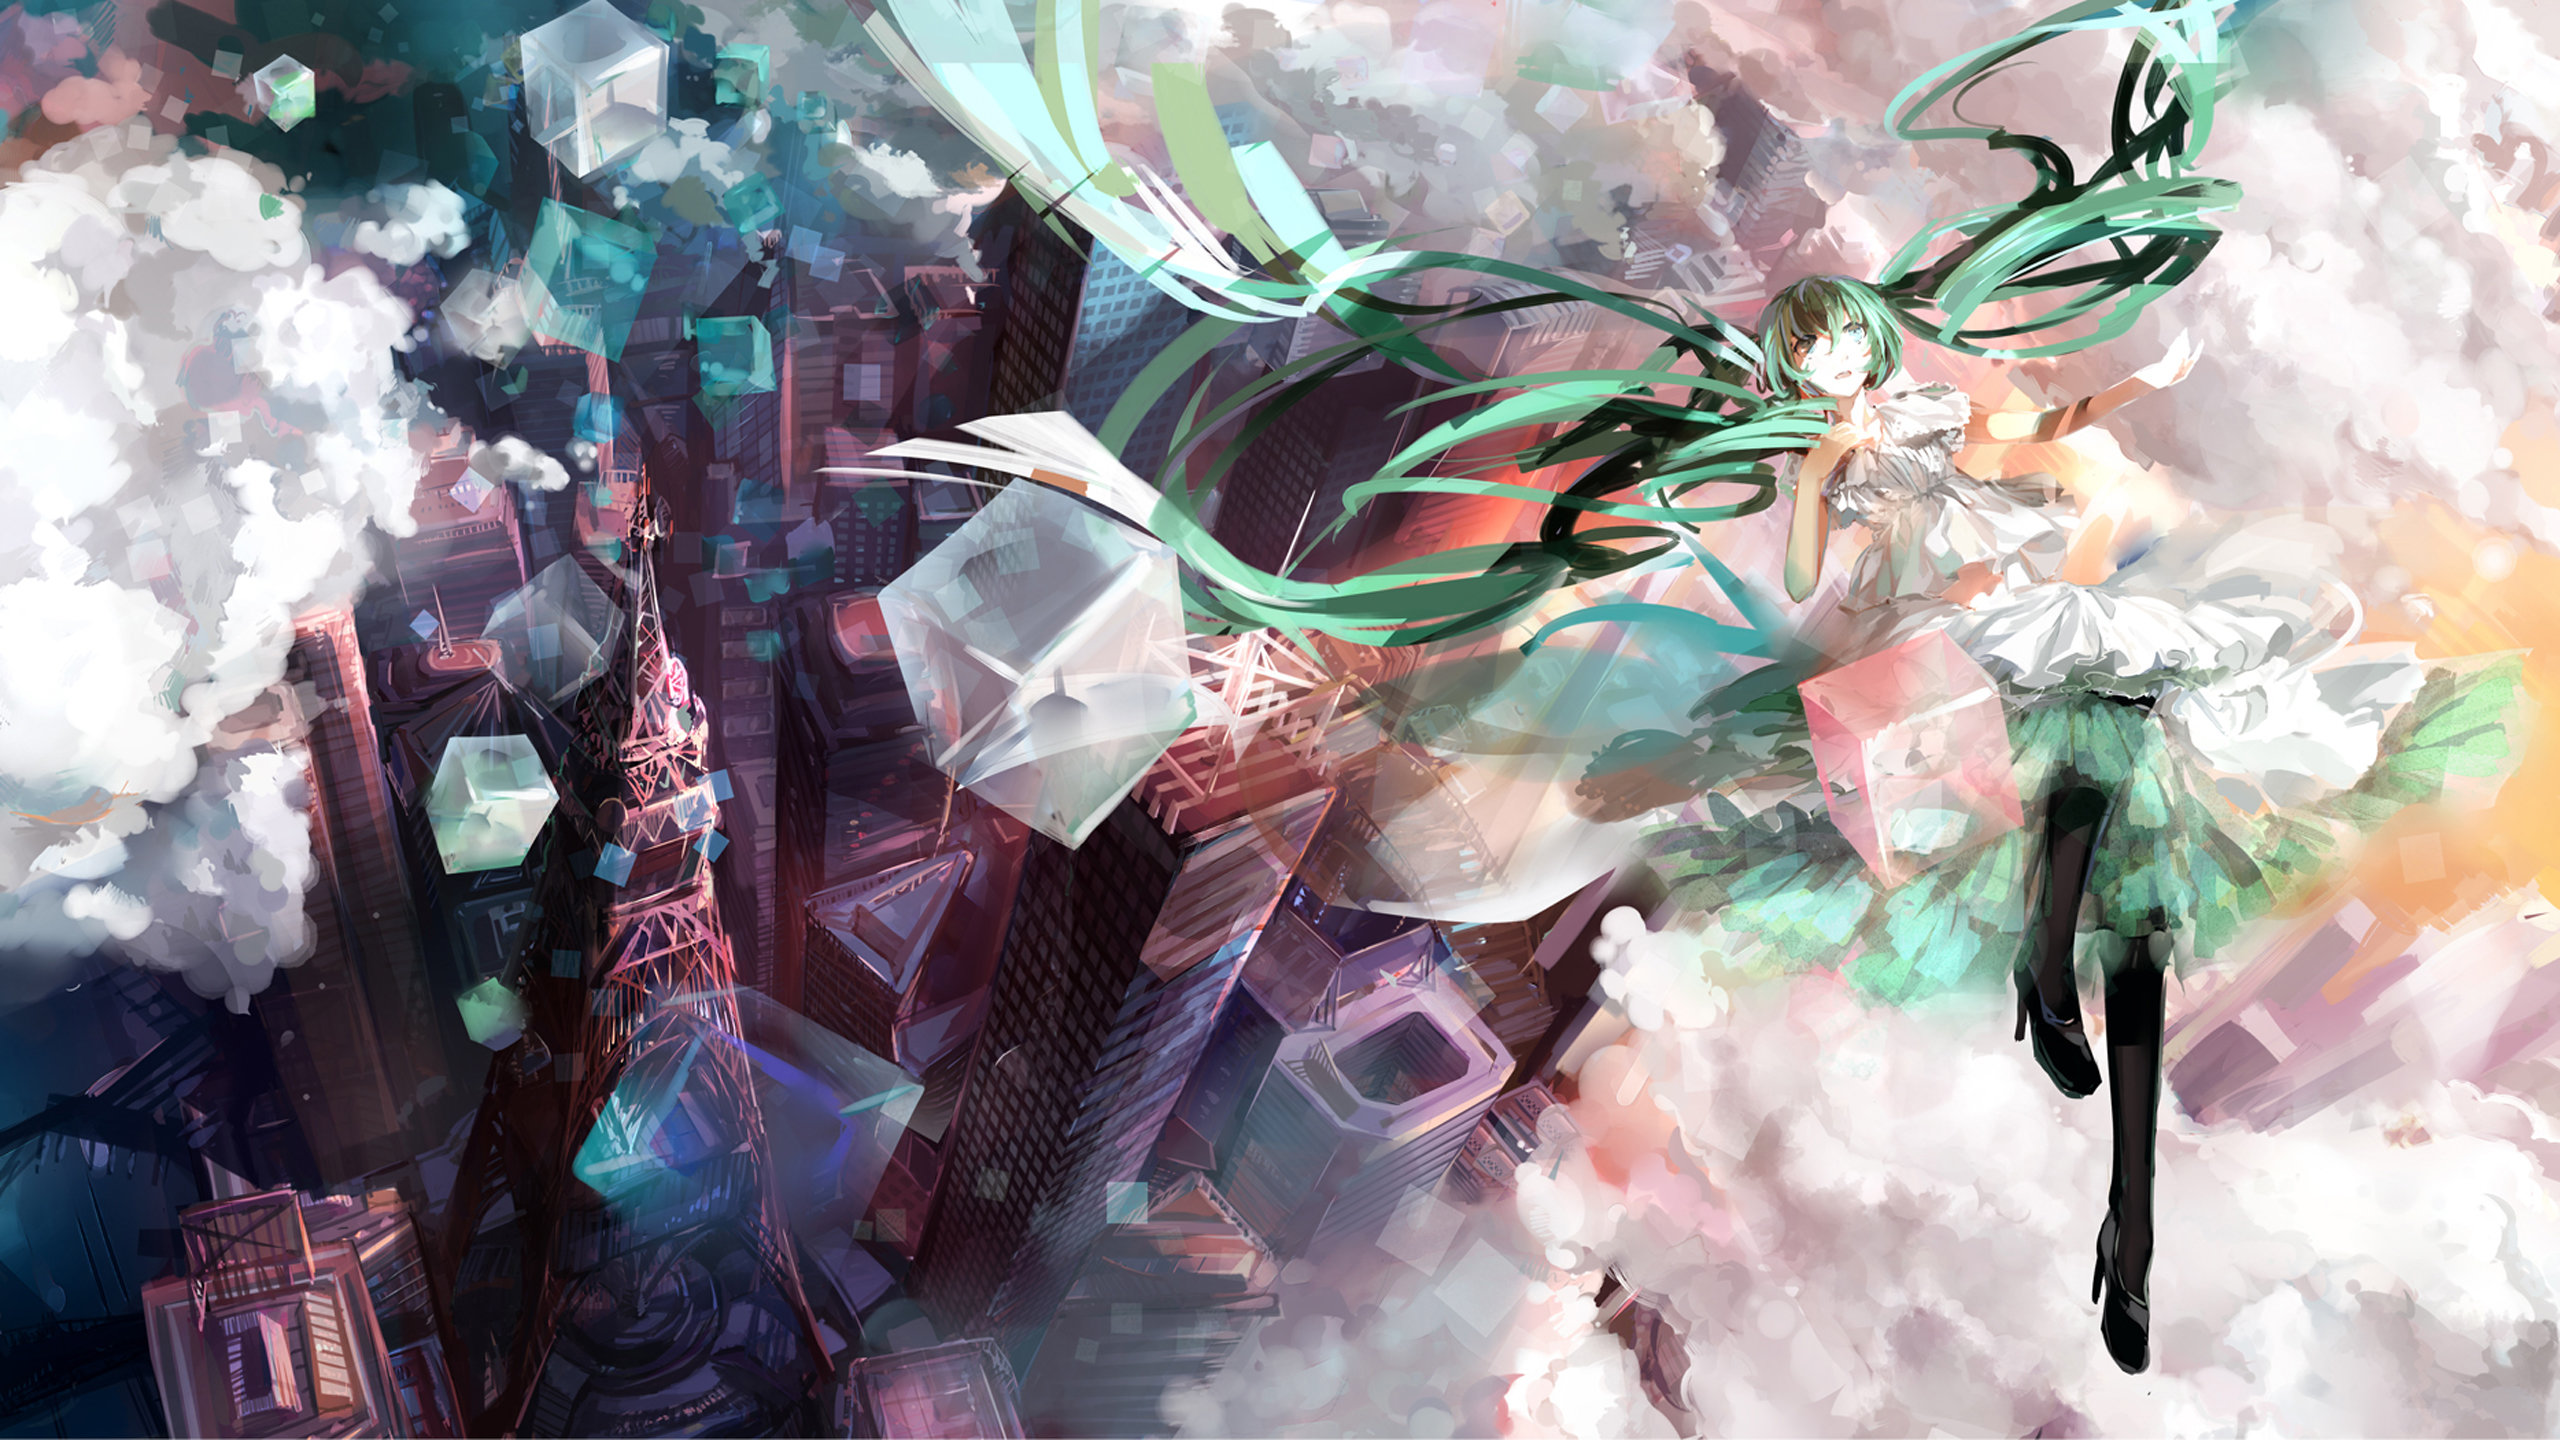 Free download Hatsune Miku background ID:471 hd 2560x1440 for desktop